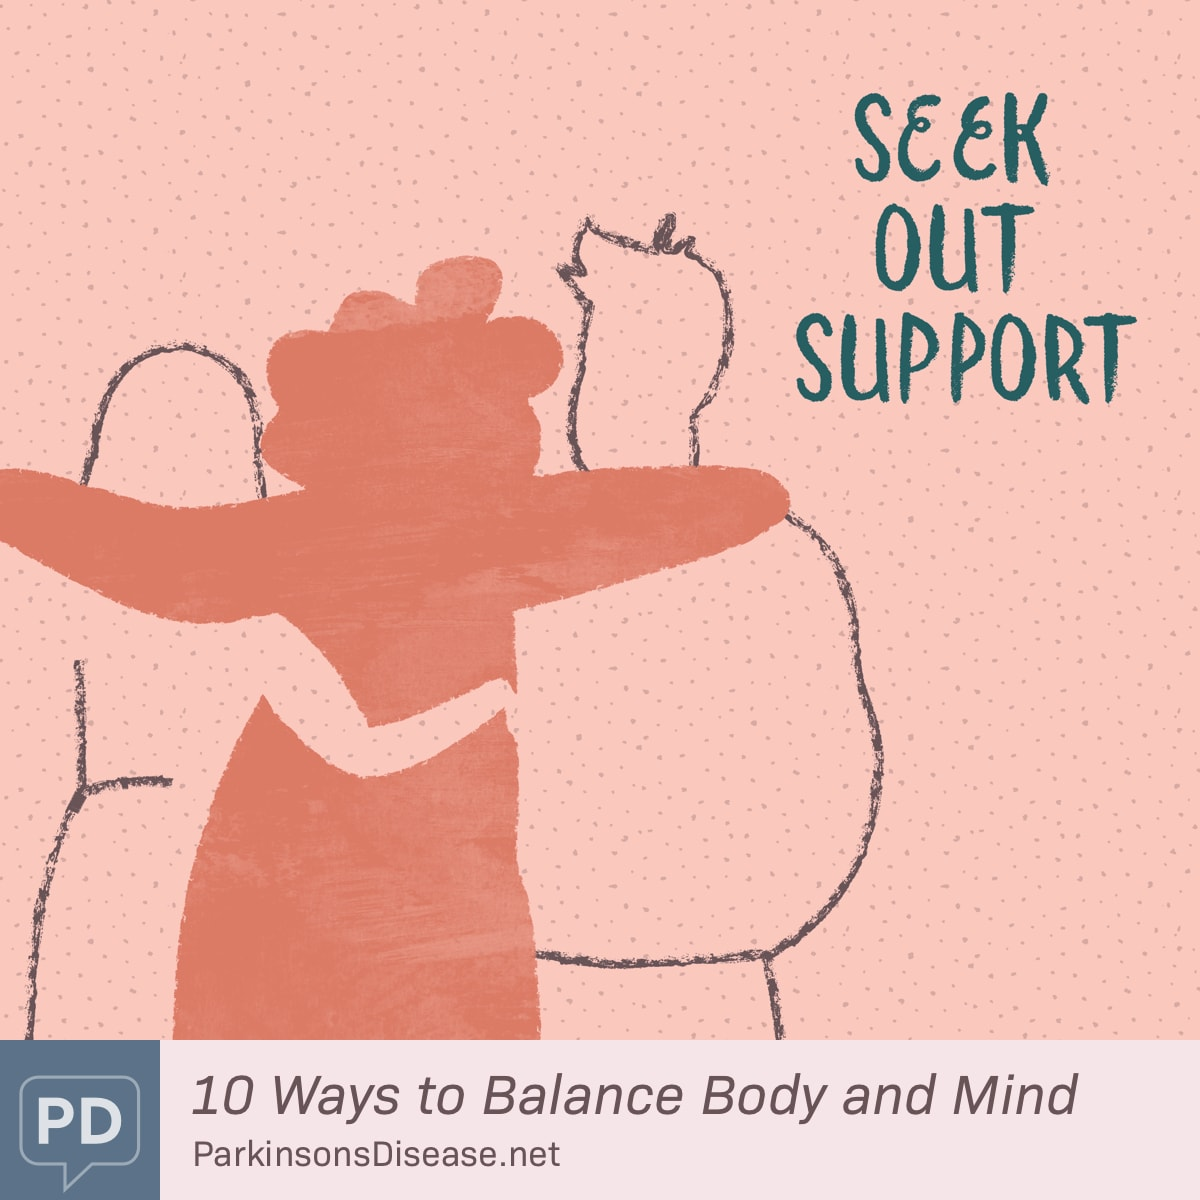 Seek Out Support